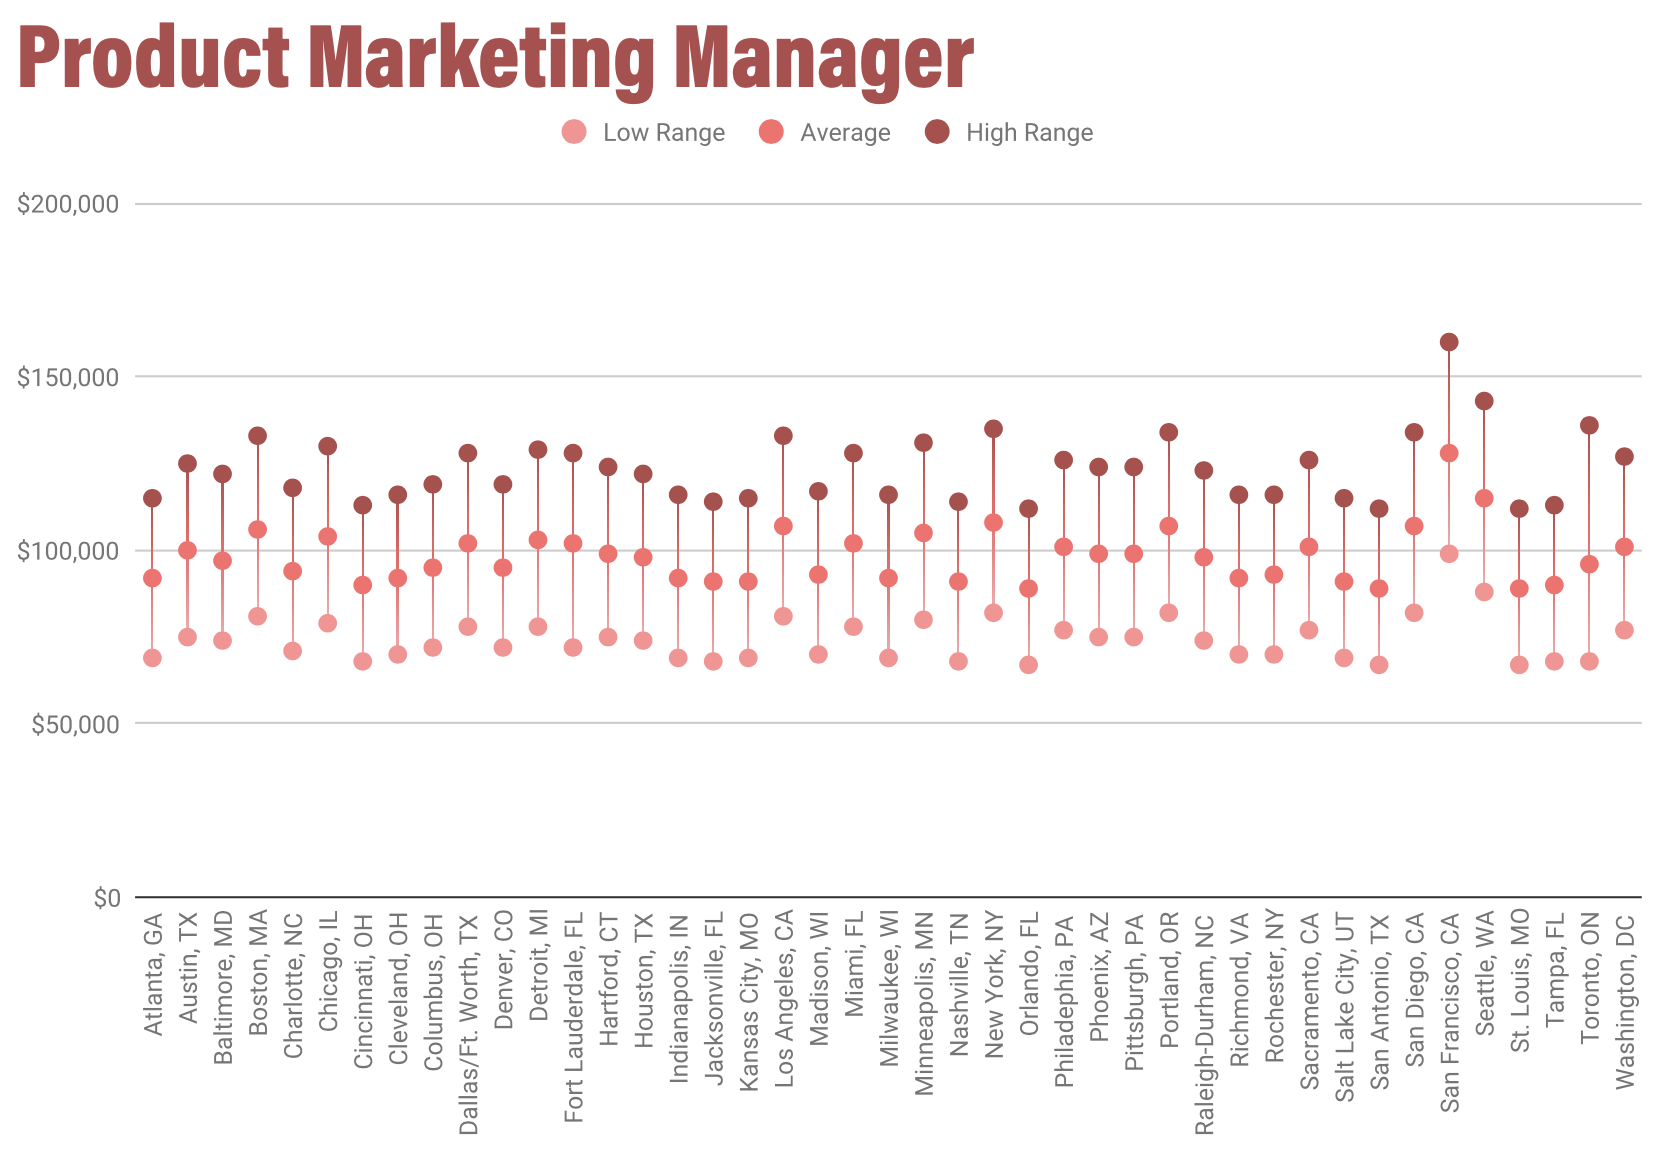 /uploads/2020/01/Product_Marketing_Manager_Salaries.png